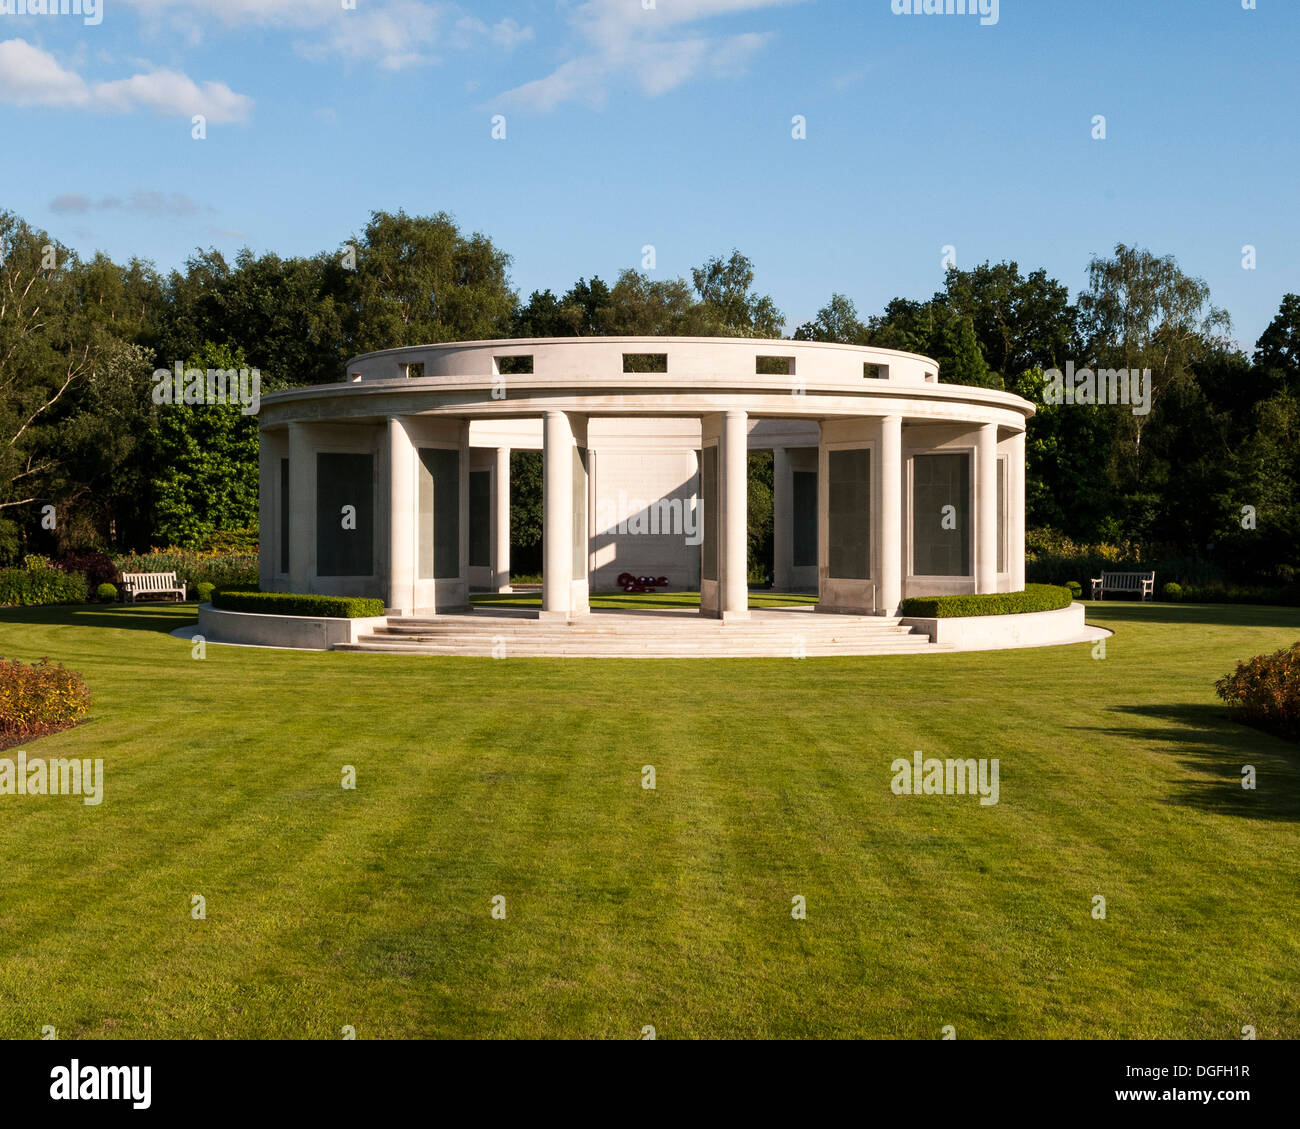 Brookwood Military Cemetery and memorials, Brookwood, United Kingdom. Architect: unknown, 2013. Memorial. Stock Photo